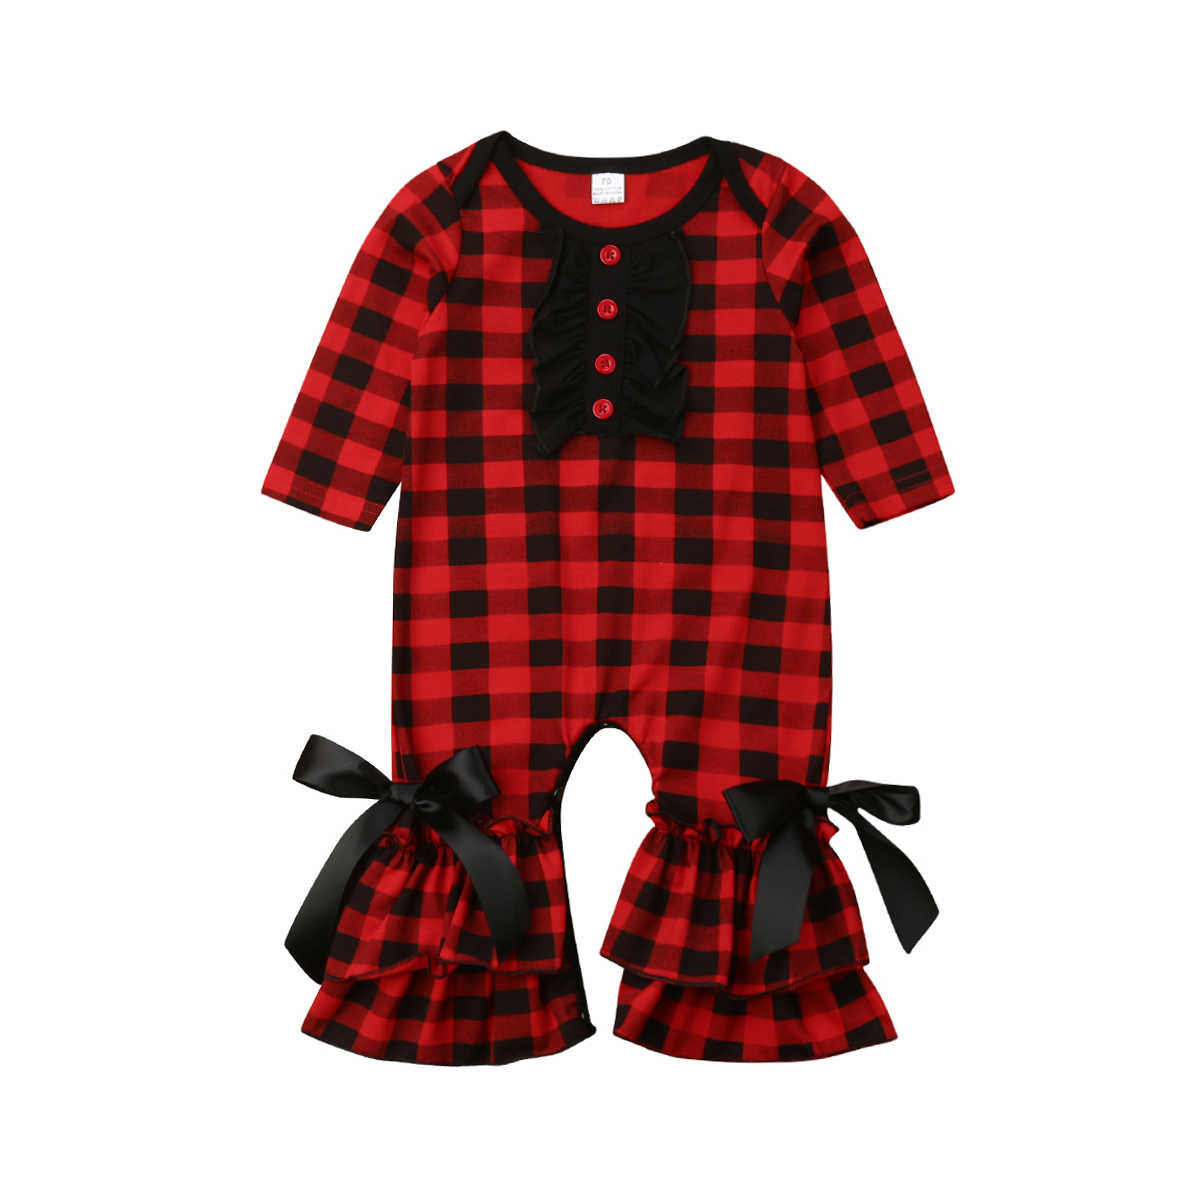 5cda9cba2f8 Detail Feedback Questions about Cute Newborn Baby Girl Long Sleeve Red  Plaid Ruffles Bow Romper Jumpsuit Outfits Baby Girls Clothes on  Aliexpress.com ...